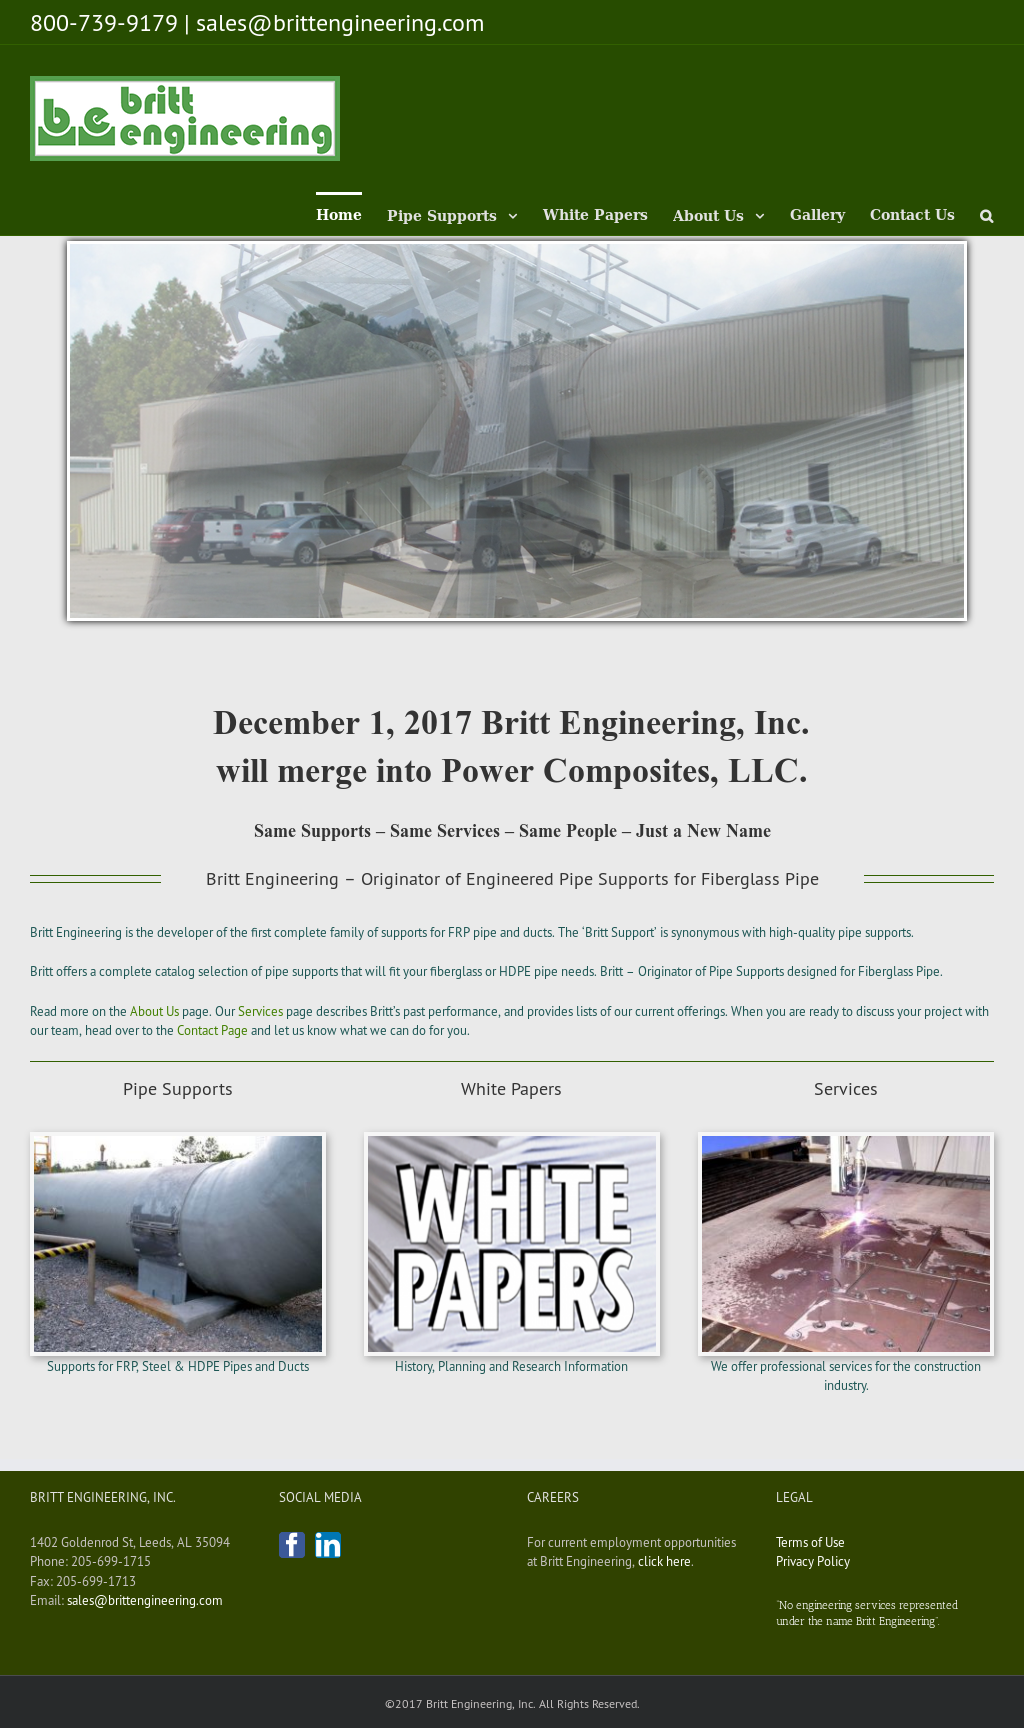 Britt Engineering Competitors, Revenue and Employees - Owler